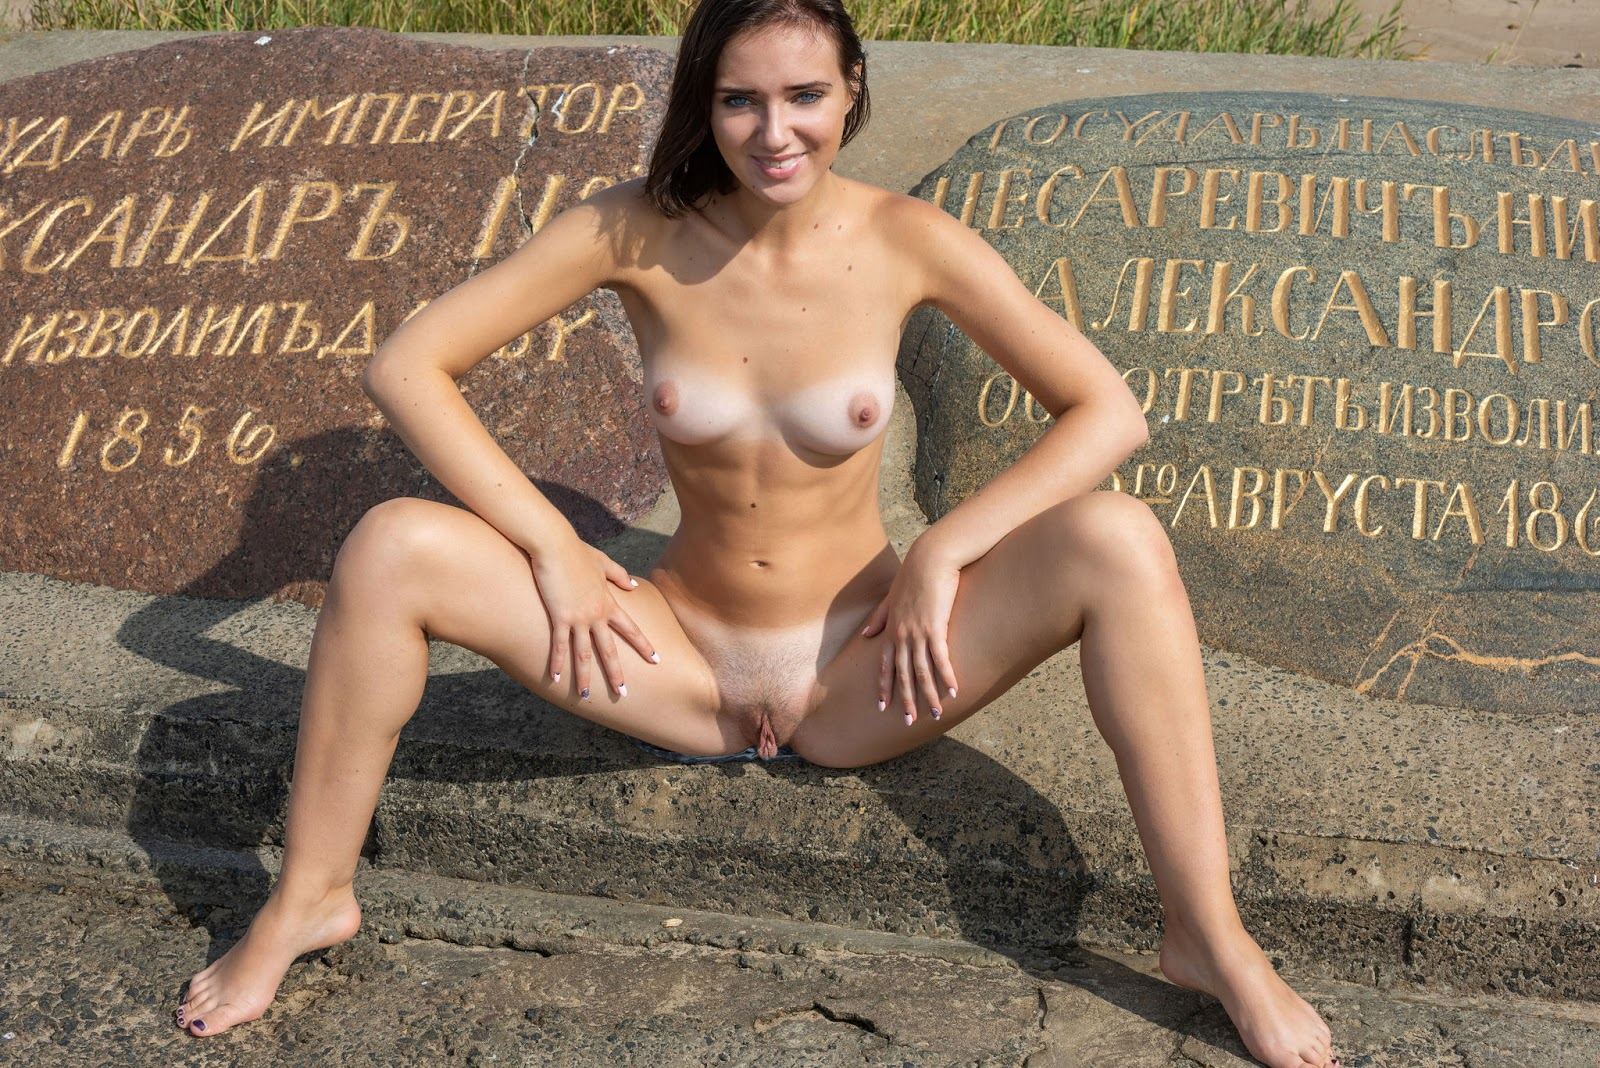 Oxana Chic gonna goggle up all the dicks in town 47